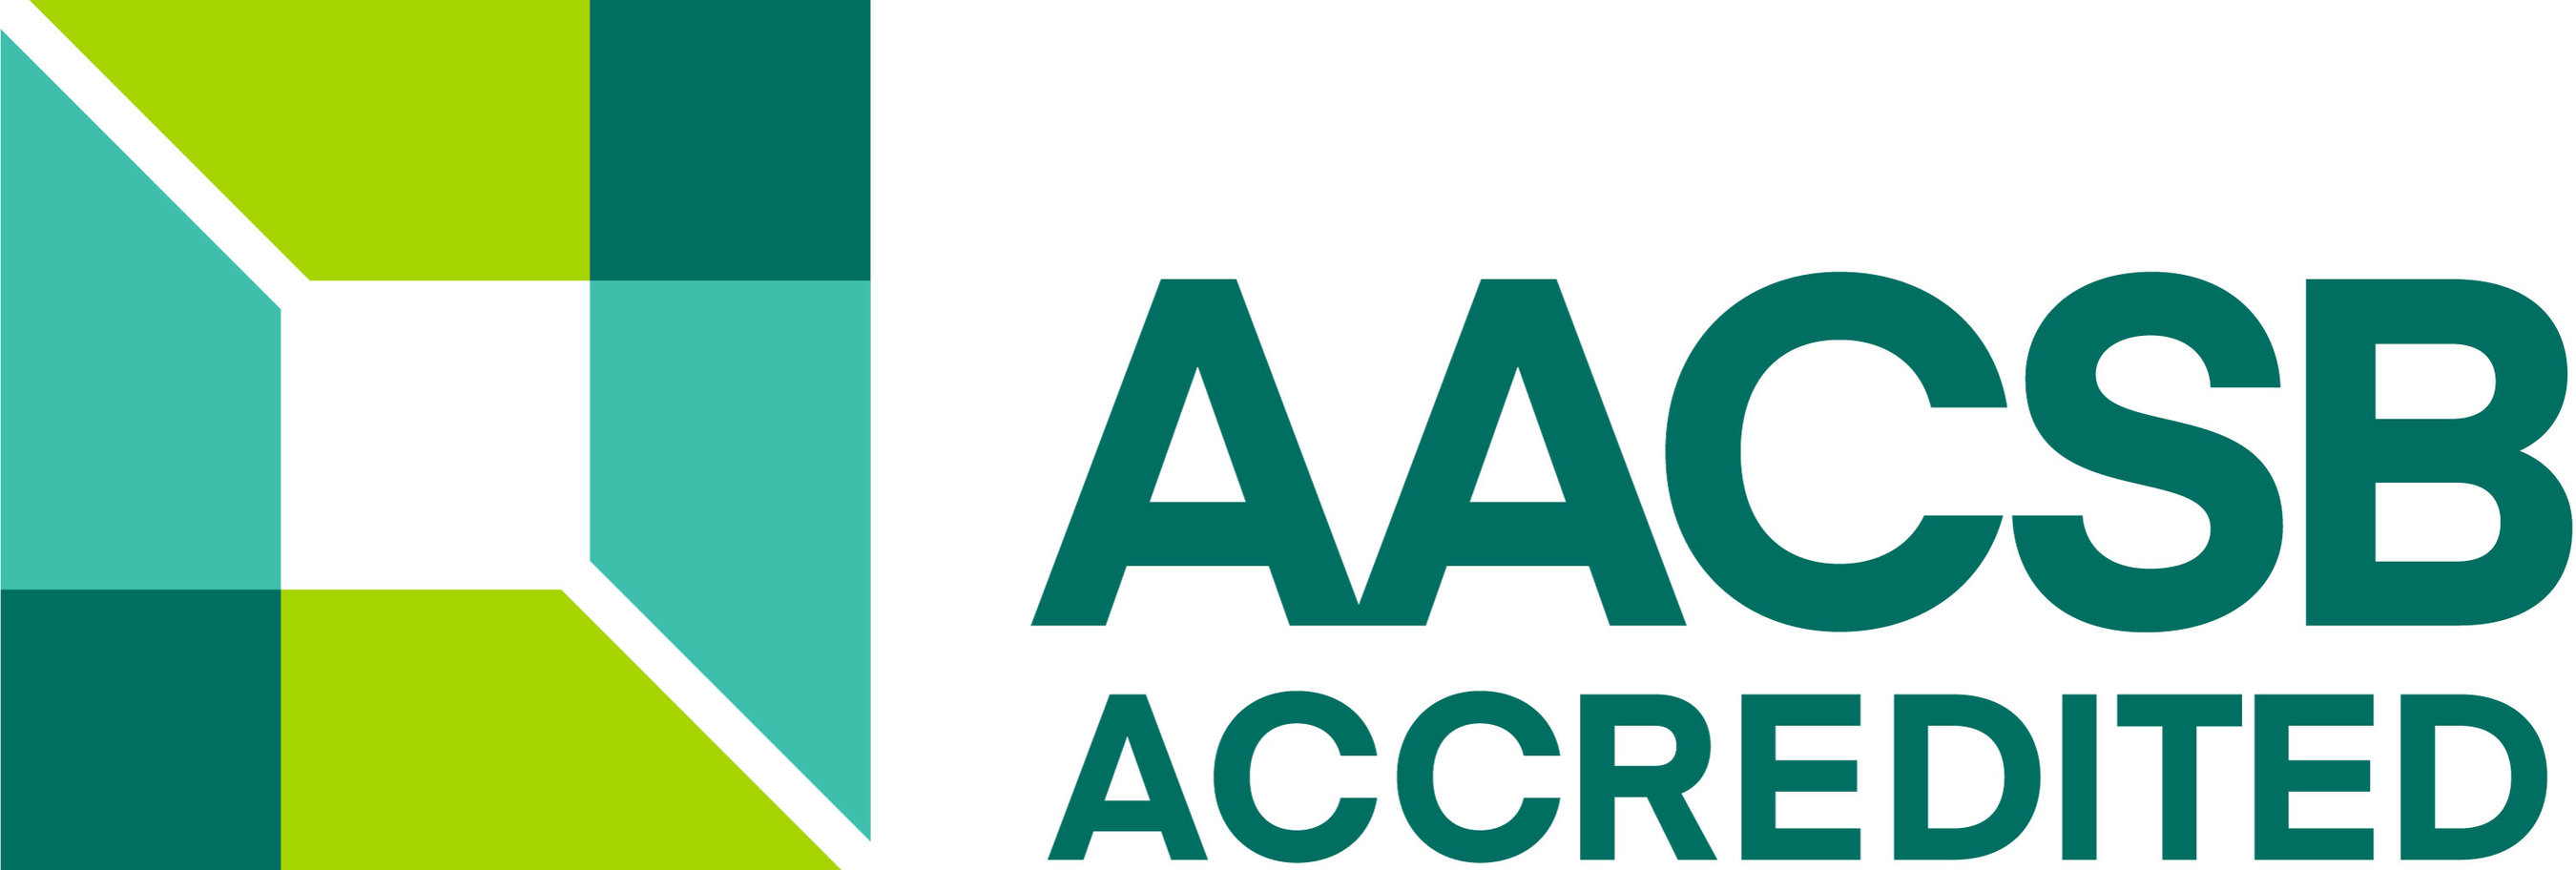 Founded in 1916, AACSB Accreditation is the highest standard of quality in business education. With more than 785 accredited business schools, across 53 countries worldwide, AACSB-accredited schools represent a network of global institutions dedicated to continuous quality improvement through engagement, innovation, and impact. (PRNewsfoto/AACSB International)